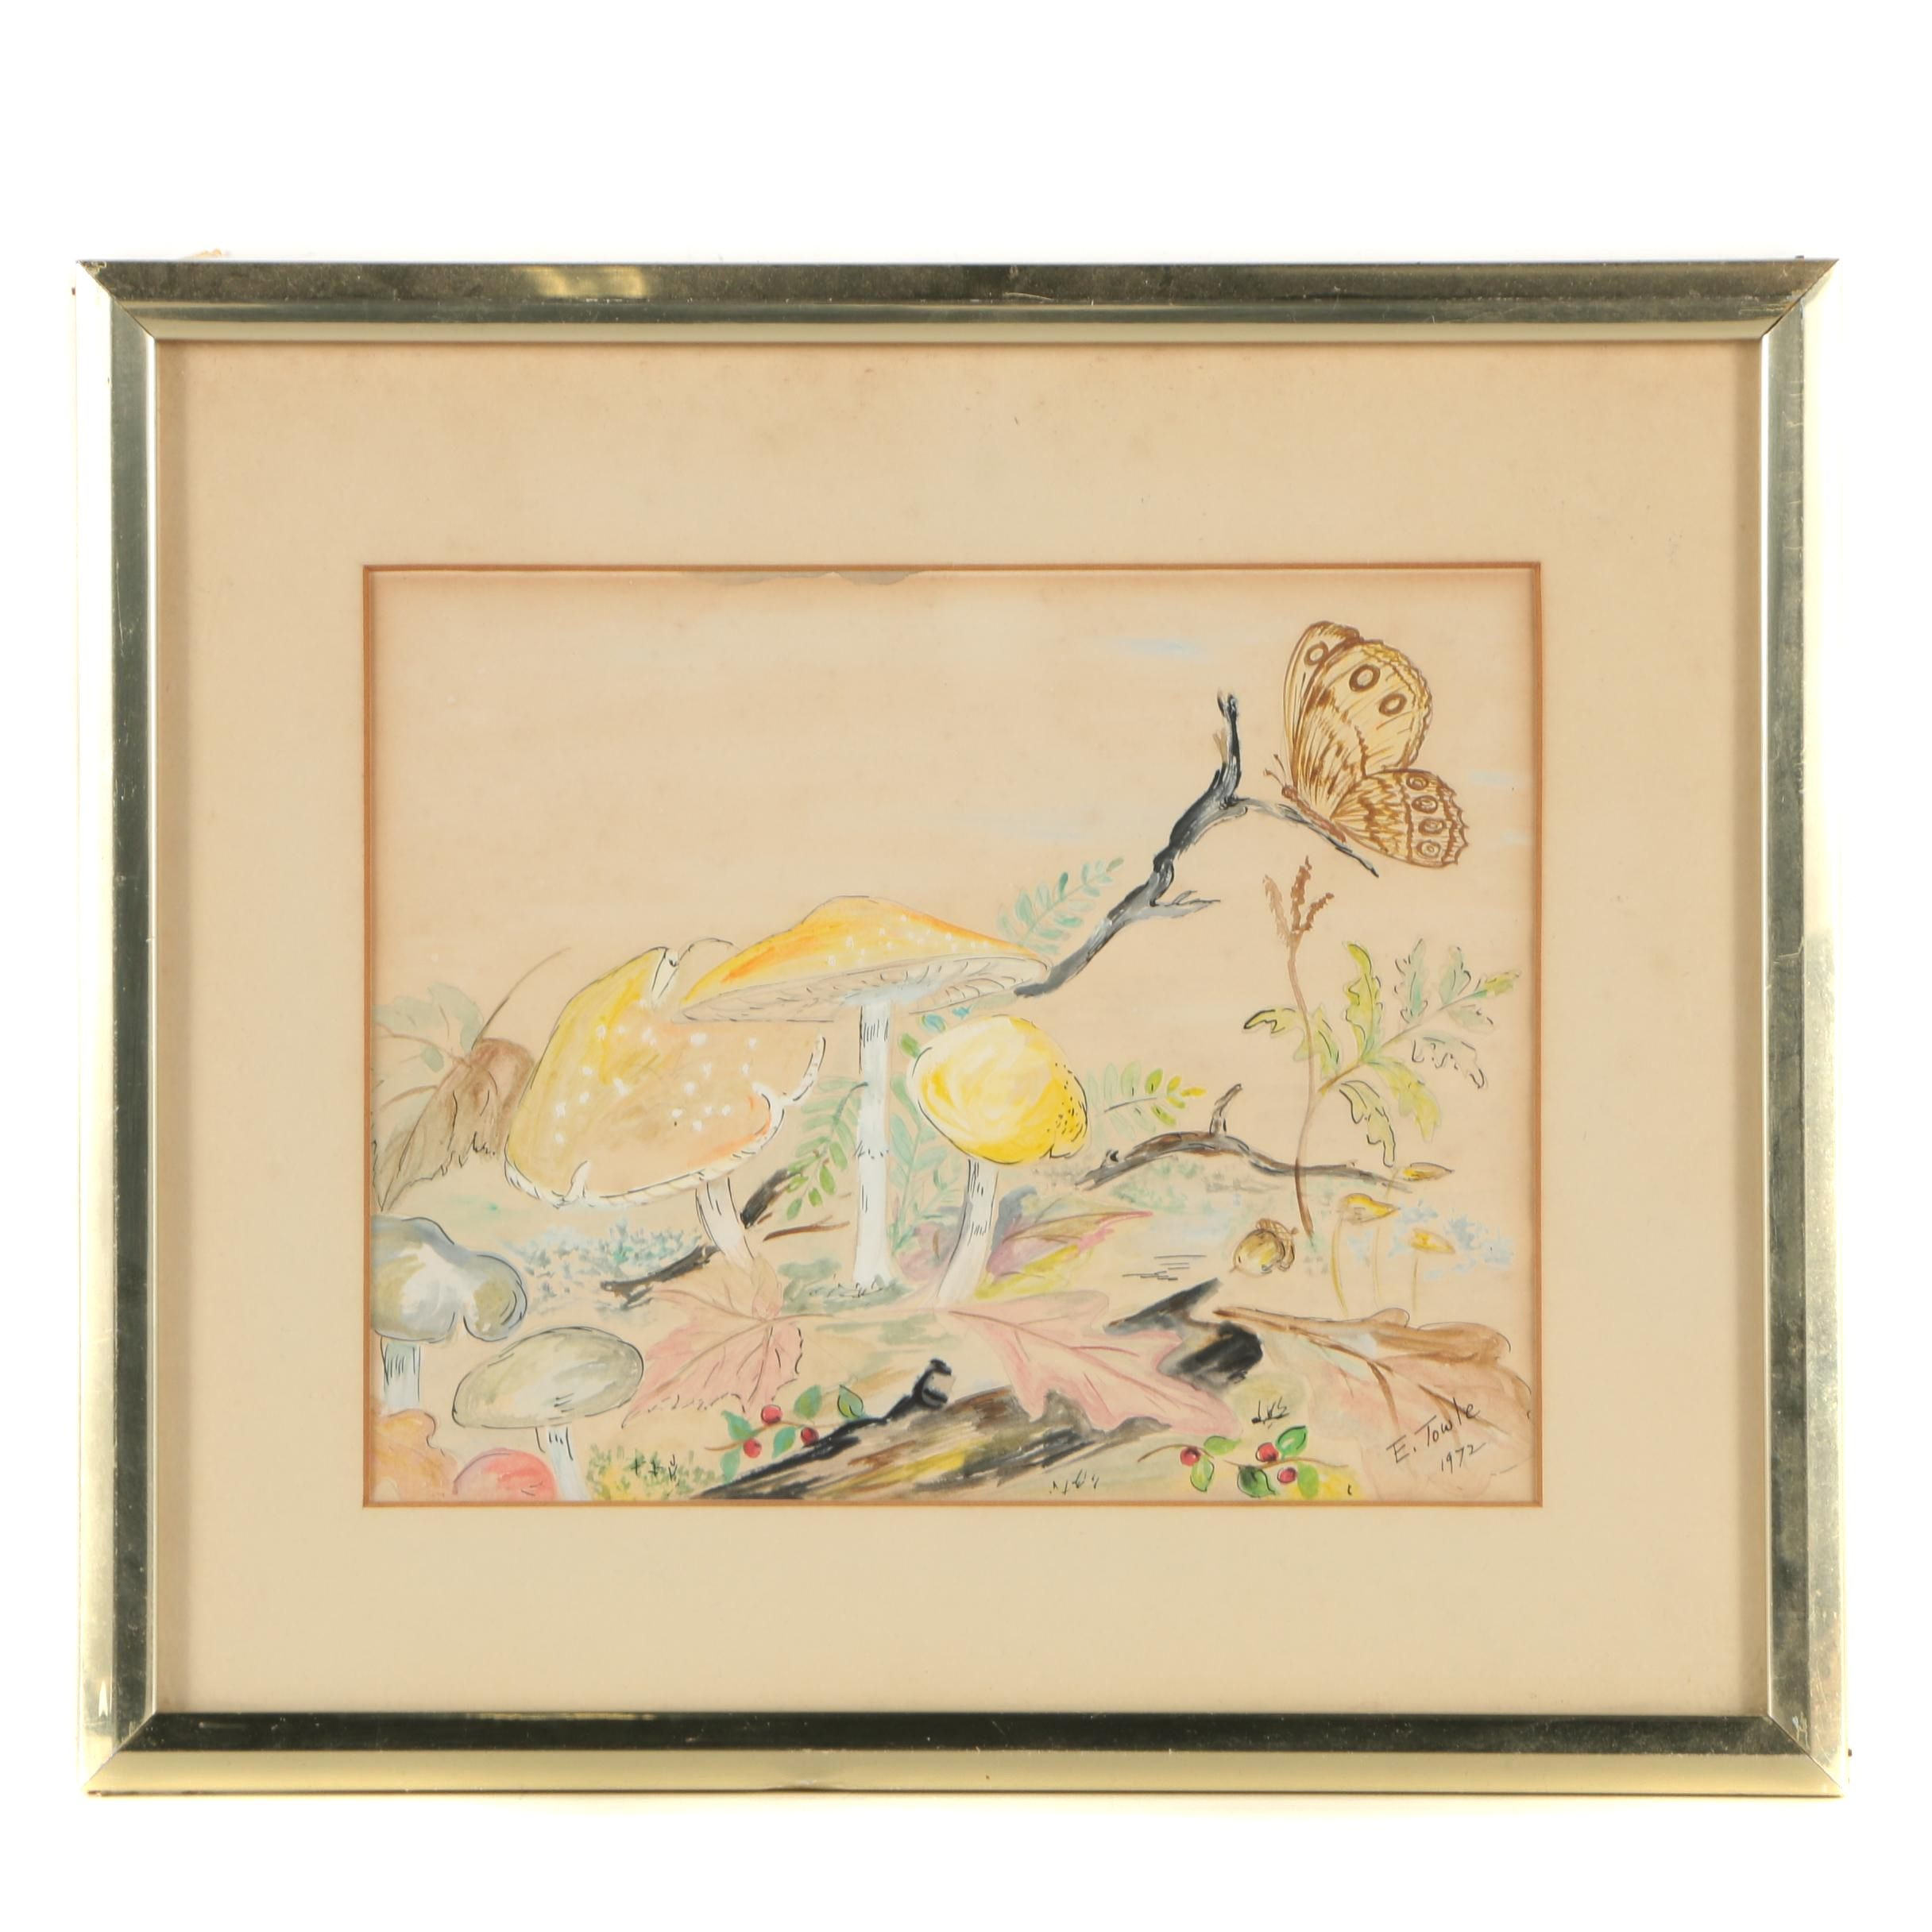 E. Towle 1972 Ink and Watercolor Painting Nature Scene